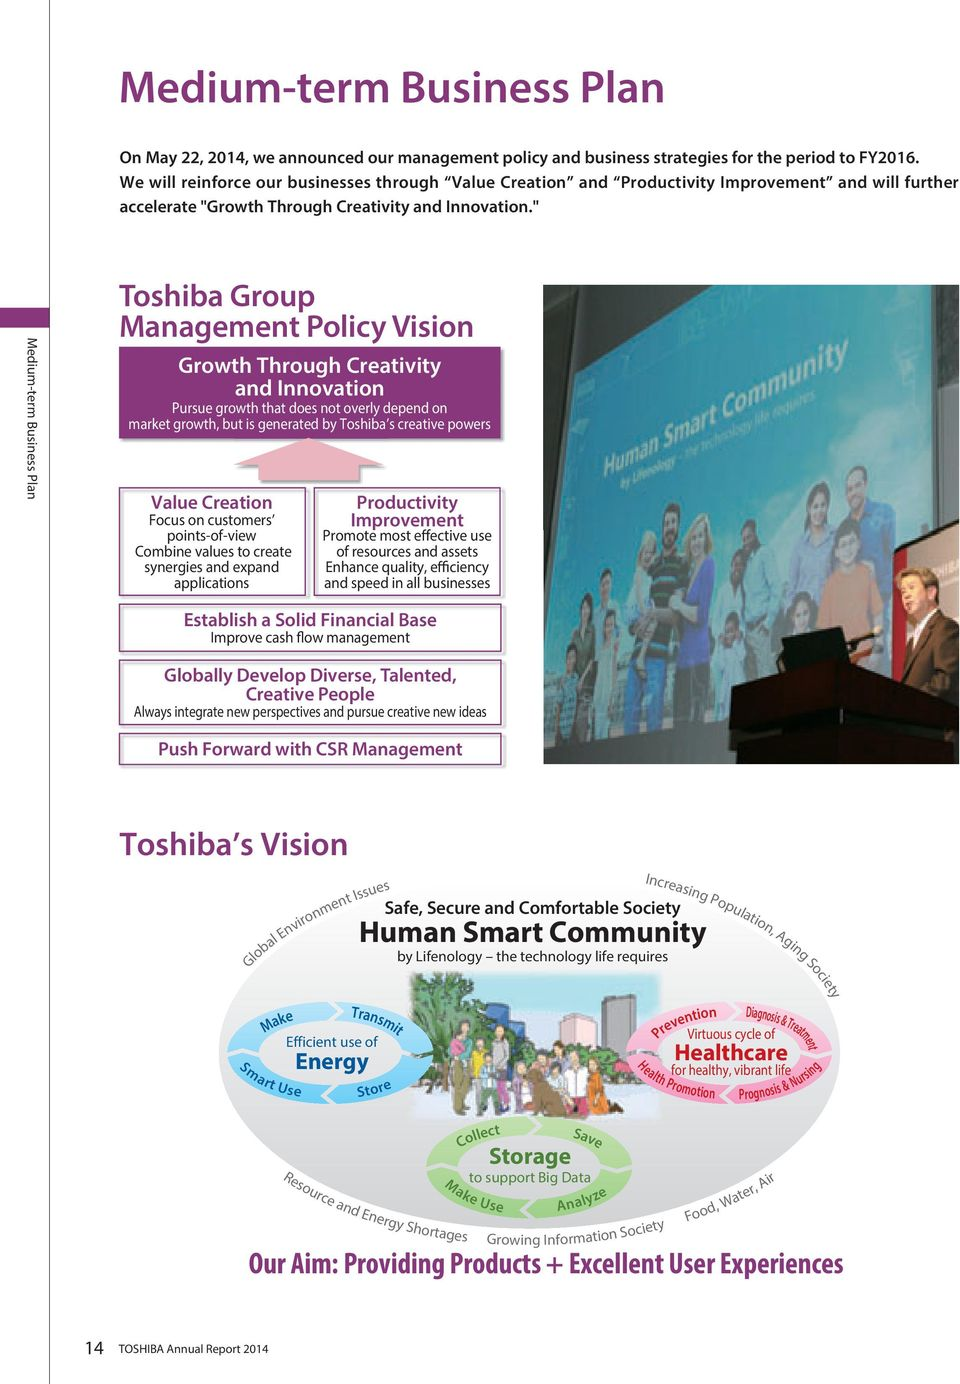 """ Medium-term Business Plan Toshiba Group Management Policy Vision Growth Through Creativity and Innovation Pursue growth that does not overly depend on market growth, but is generated by Toshiba s"